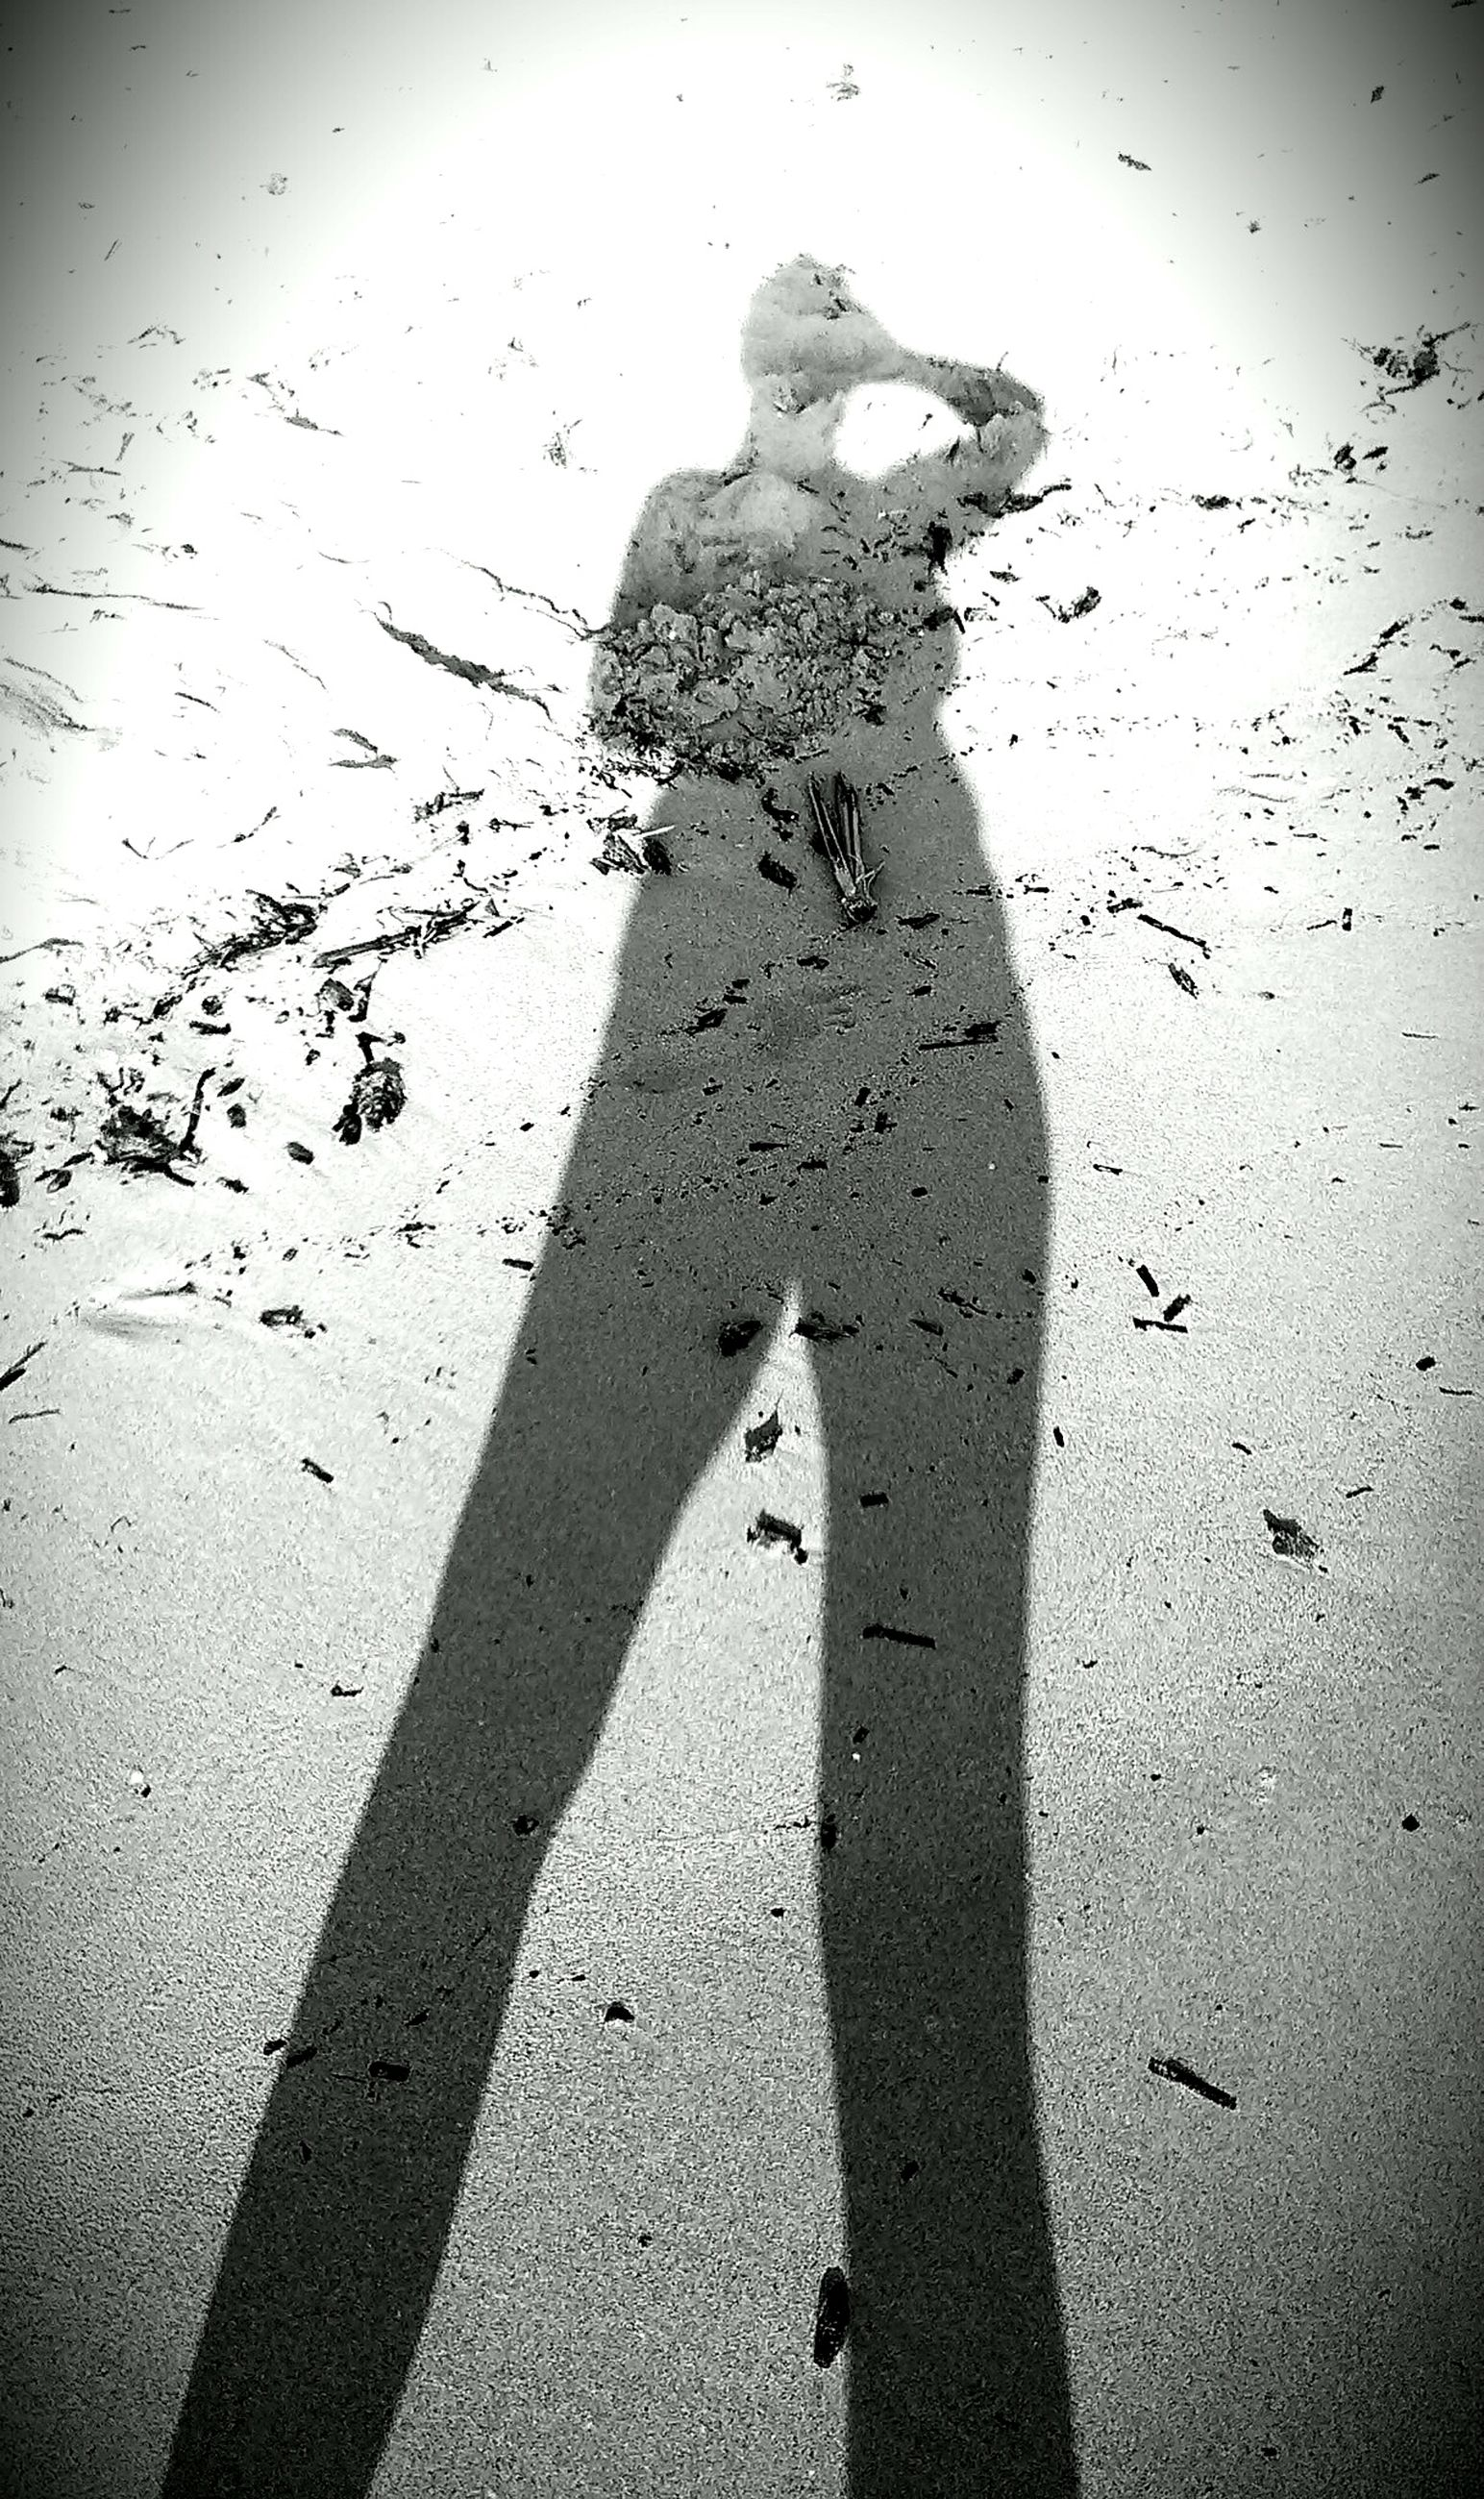 shadow, lifestyles, focus on shadow, leisure activity, sunlight, standing, silhouette, men, outline, gesturing, outdoors, day, high angle view, three quarter length, arms raised, person, auto post production filter